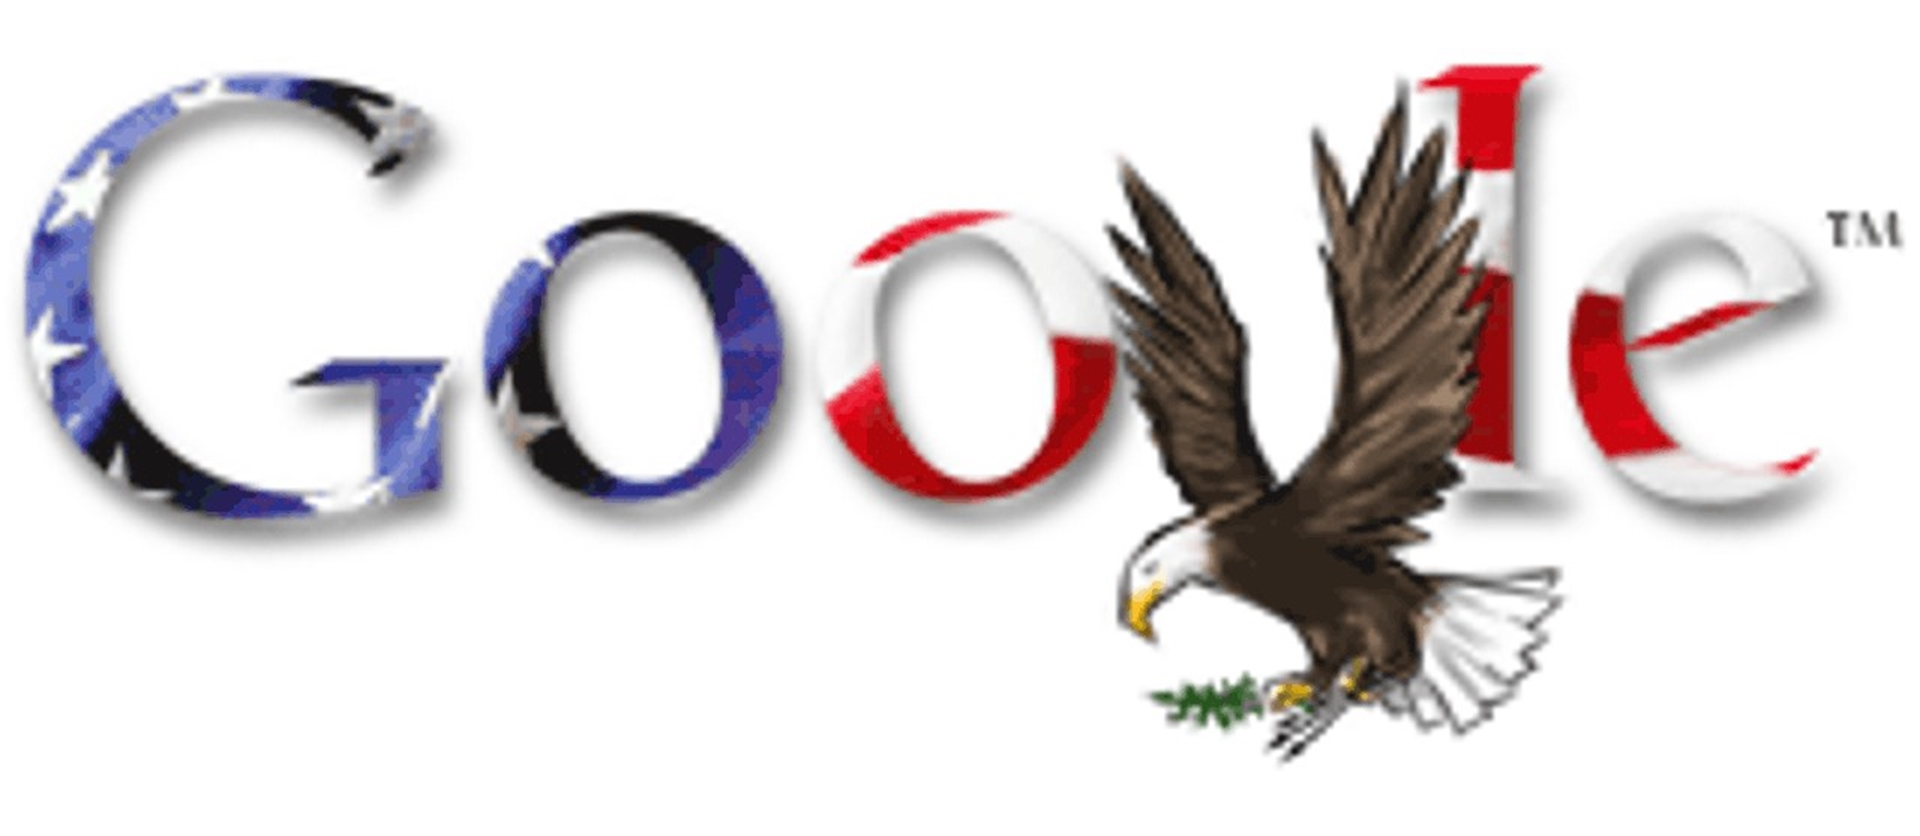 4th of July Google Doodle 2007